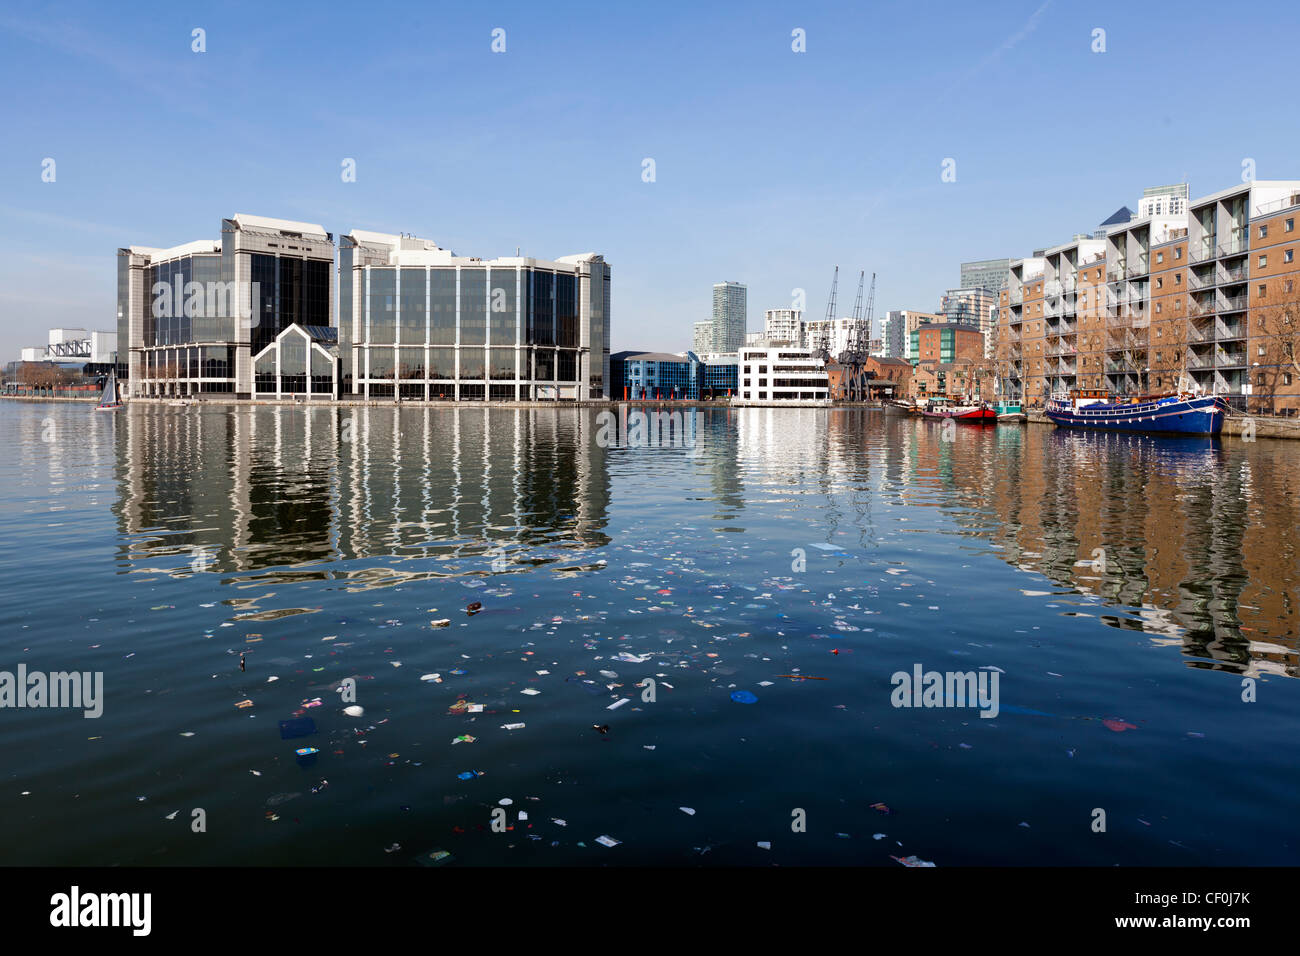 Pollution floating in Millwall Outer Dock, Isle of Dogs, Tower Hamlets, London, UK. - Stock Image